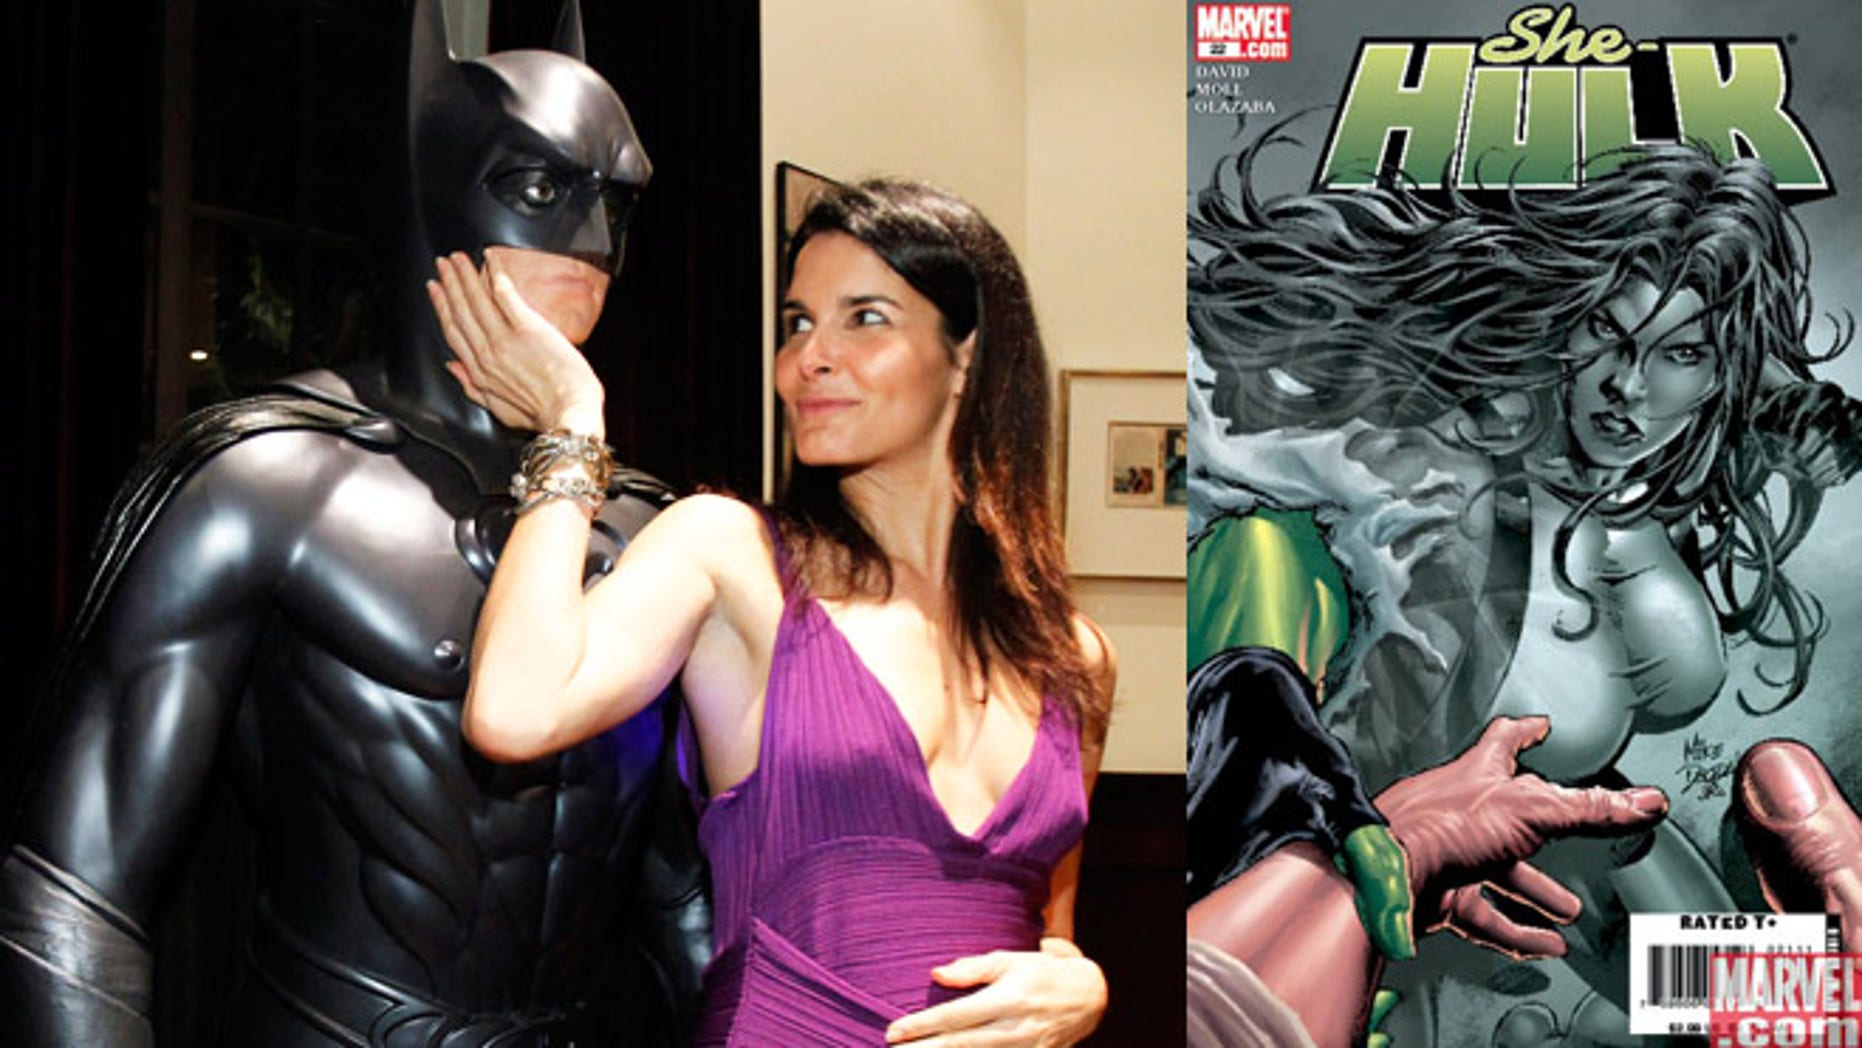 Angie Harmon poses with a Batman figure at the 3rd annual Women In Film, LA Pre-Oscar party in 2010. A hint at her She-Hulk leanings?